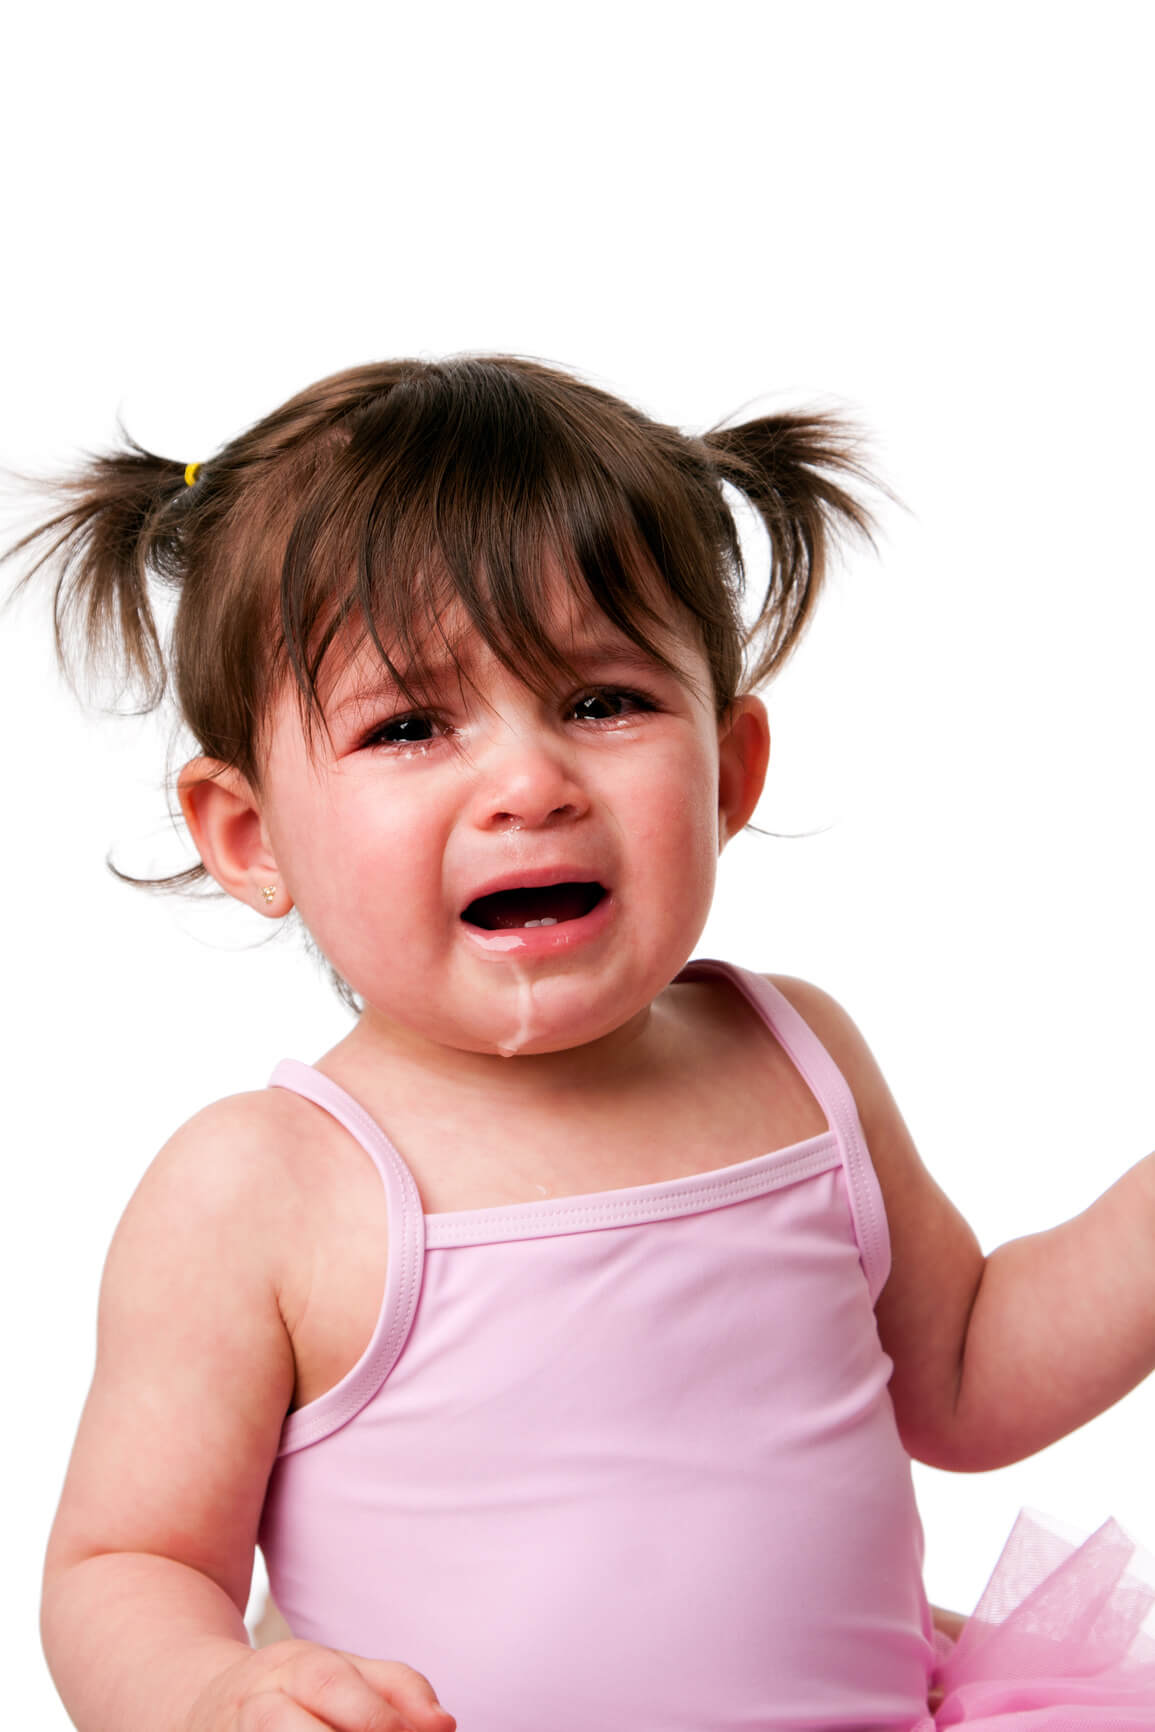 Ask Rene: My Toddler Cries All The TIME! - Good Enough Mother